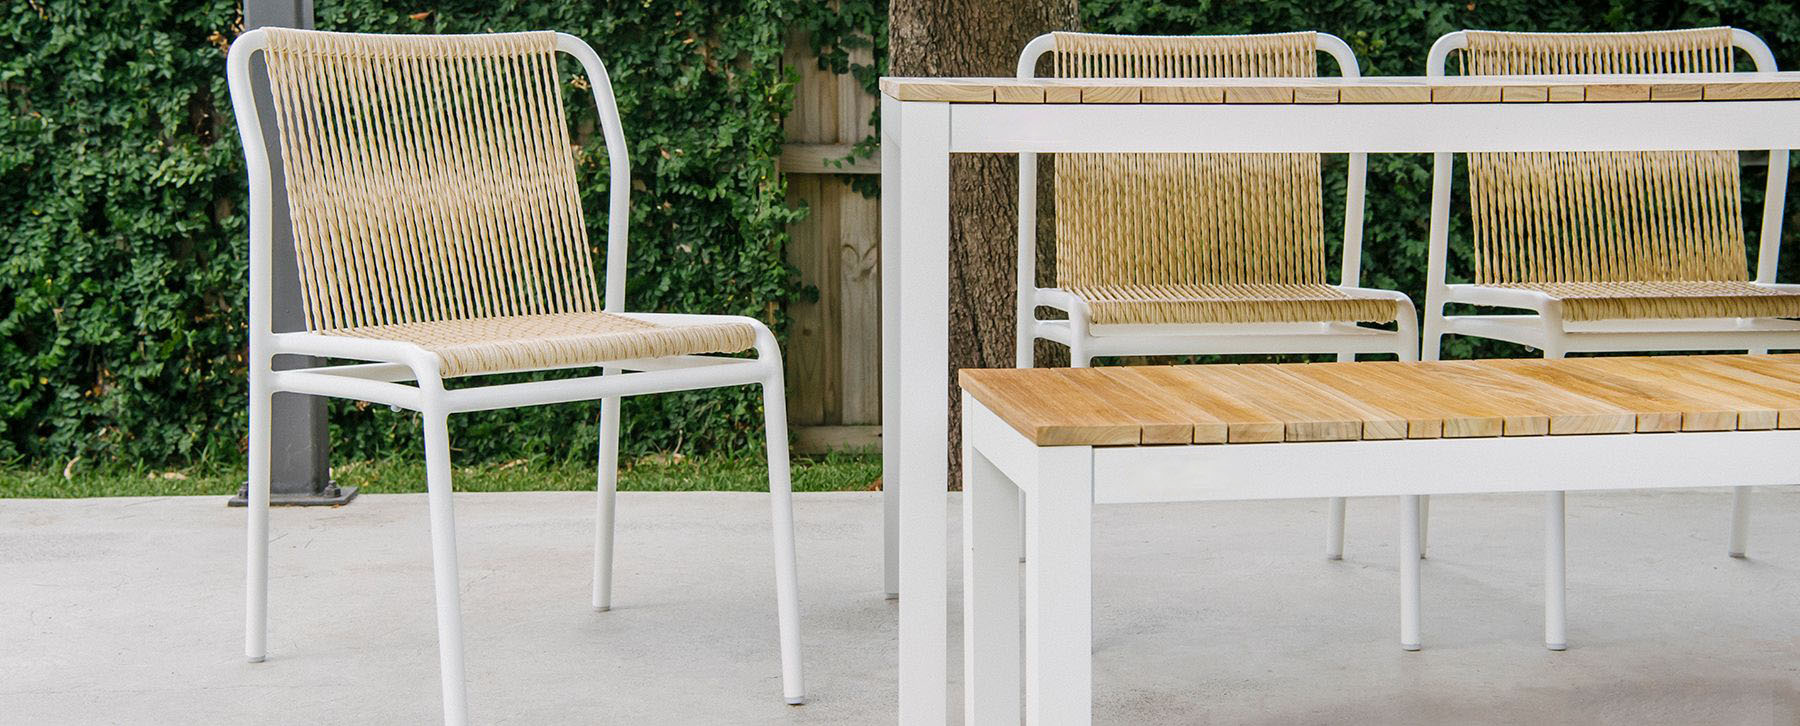 Flyn Dining Chair Stellar Couture Outdoor